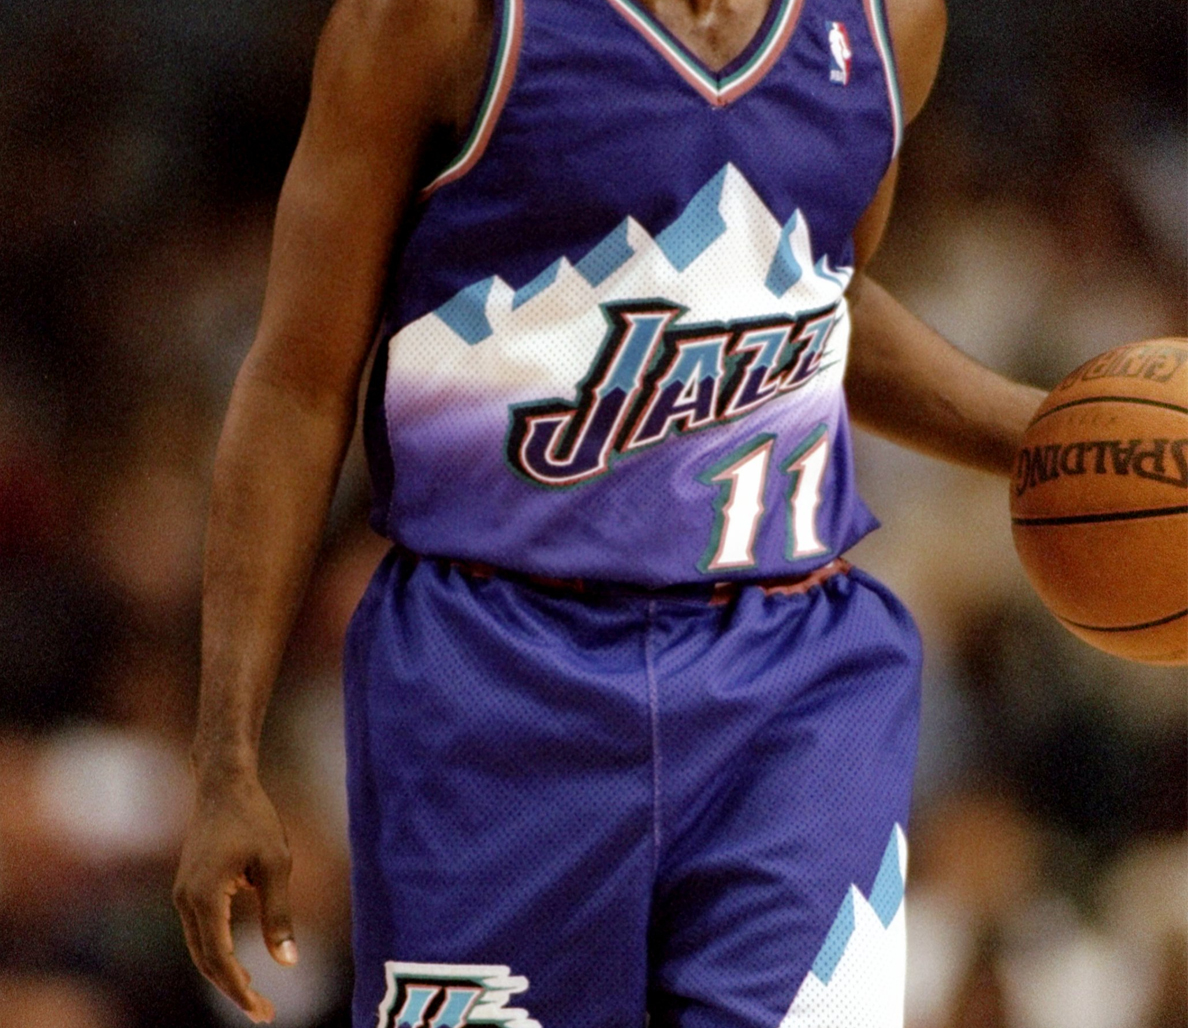 separation shoes 37dc8 810be The 10 Worst NBA Jerseys of All Time - Men's Journal